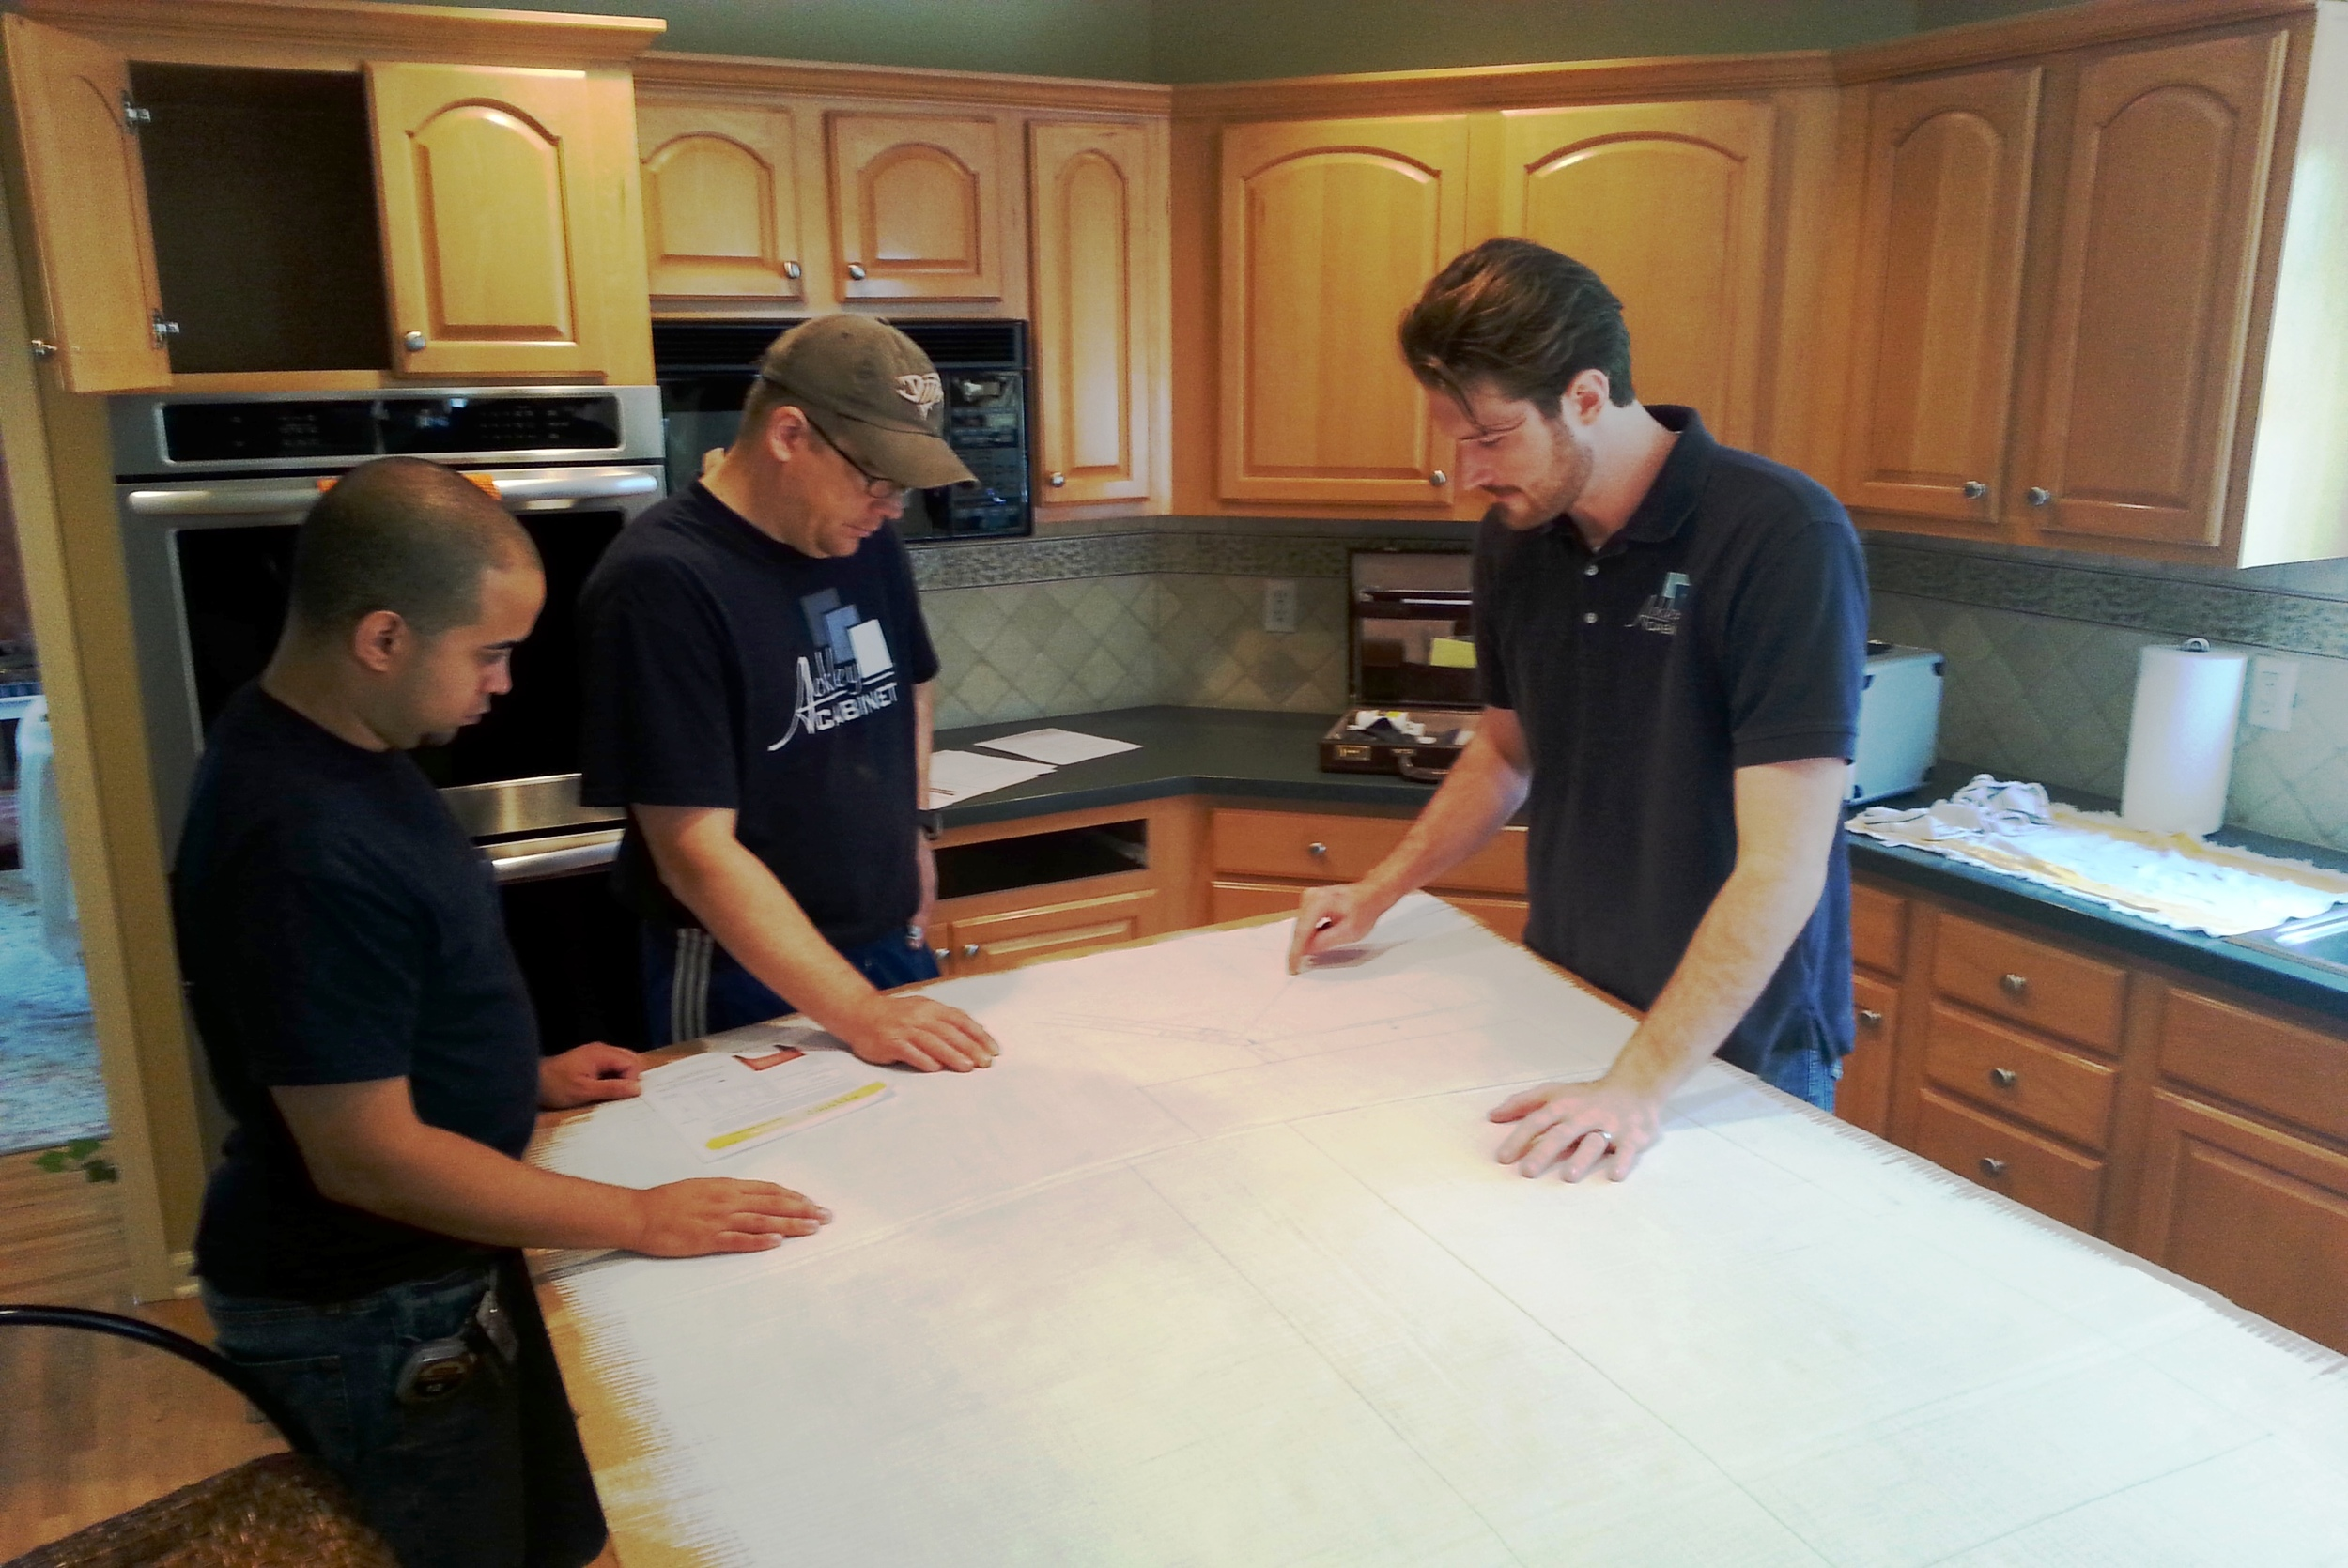 Ackley Cabinet Installation Team